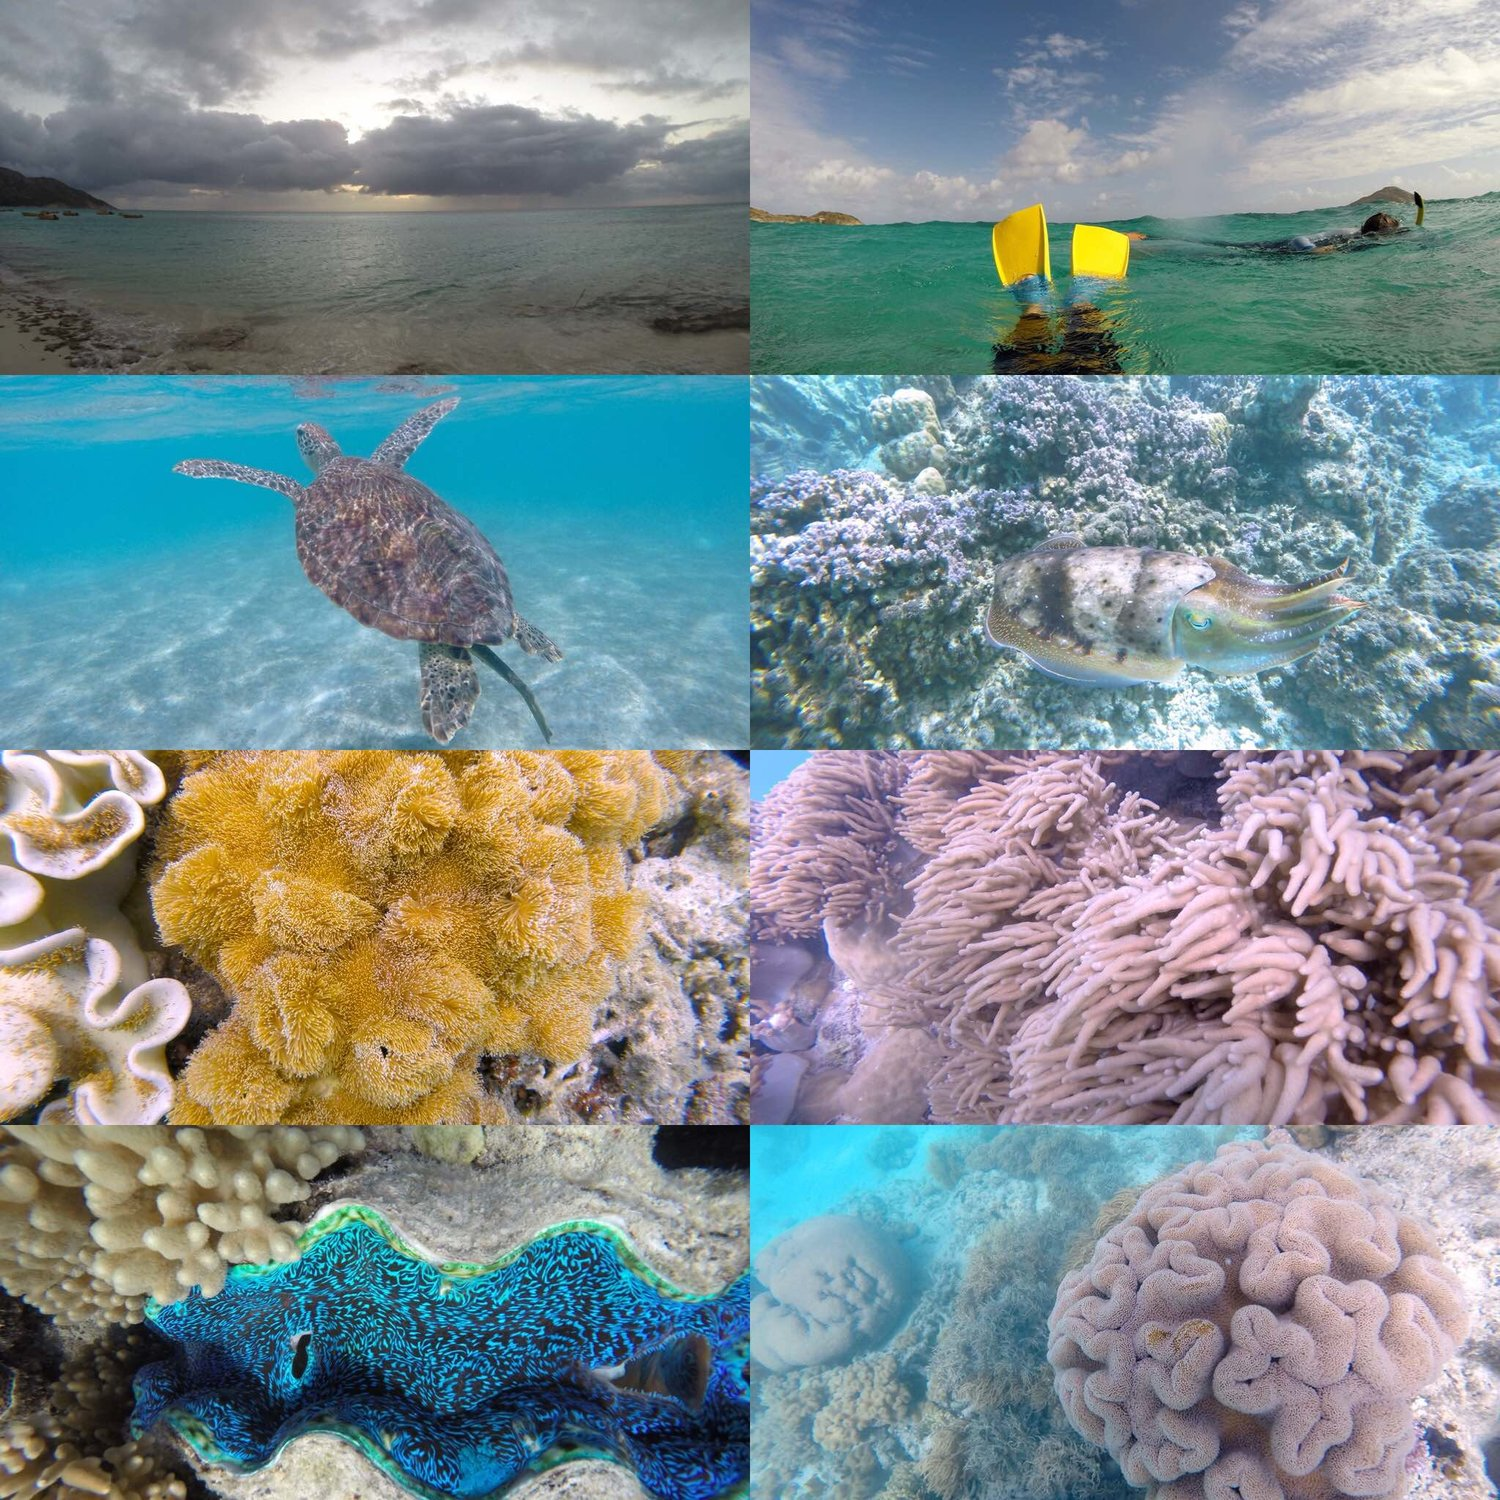 Collage of images taken by our daughter at Lizard Island, 2014. Turtles and cuttlefish are her favorites in the second row down.